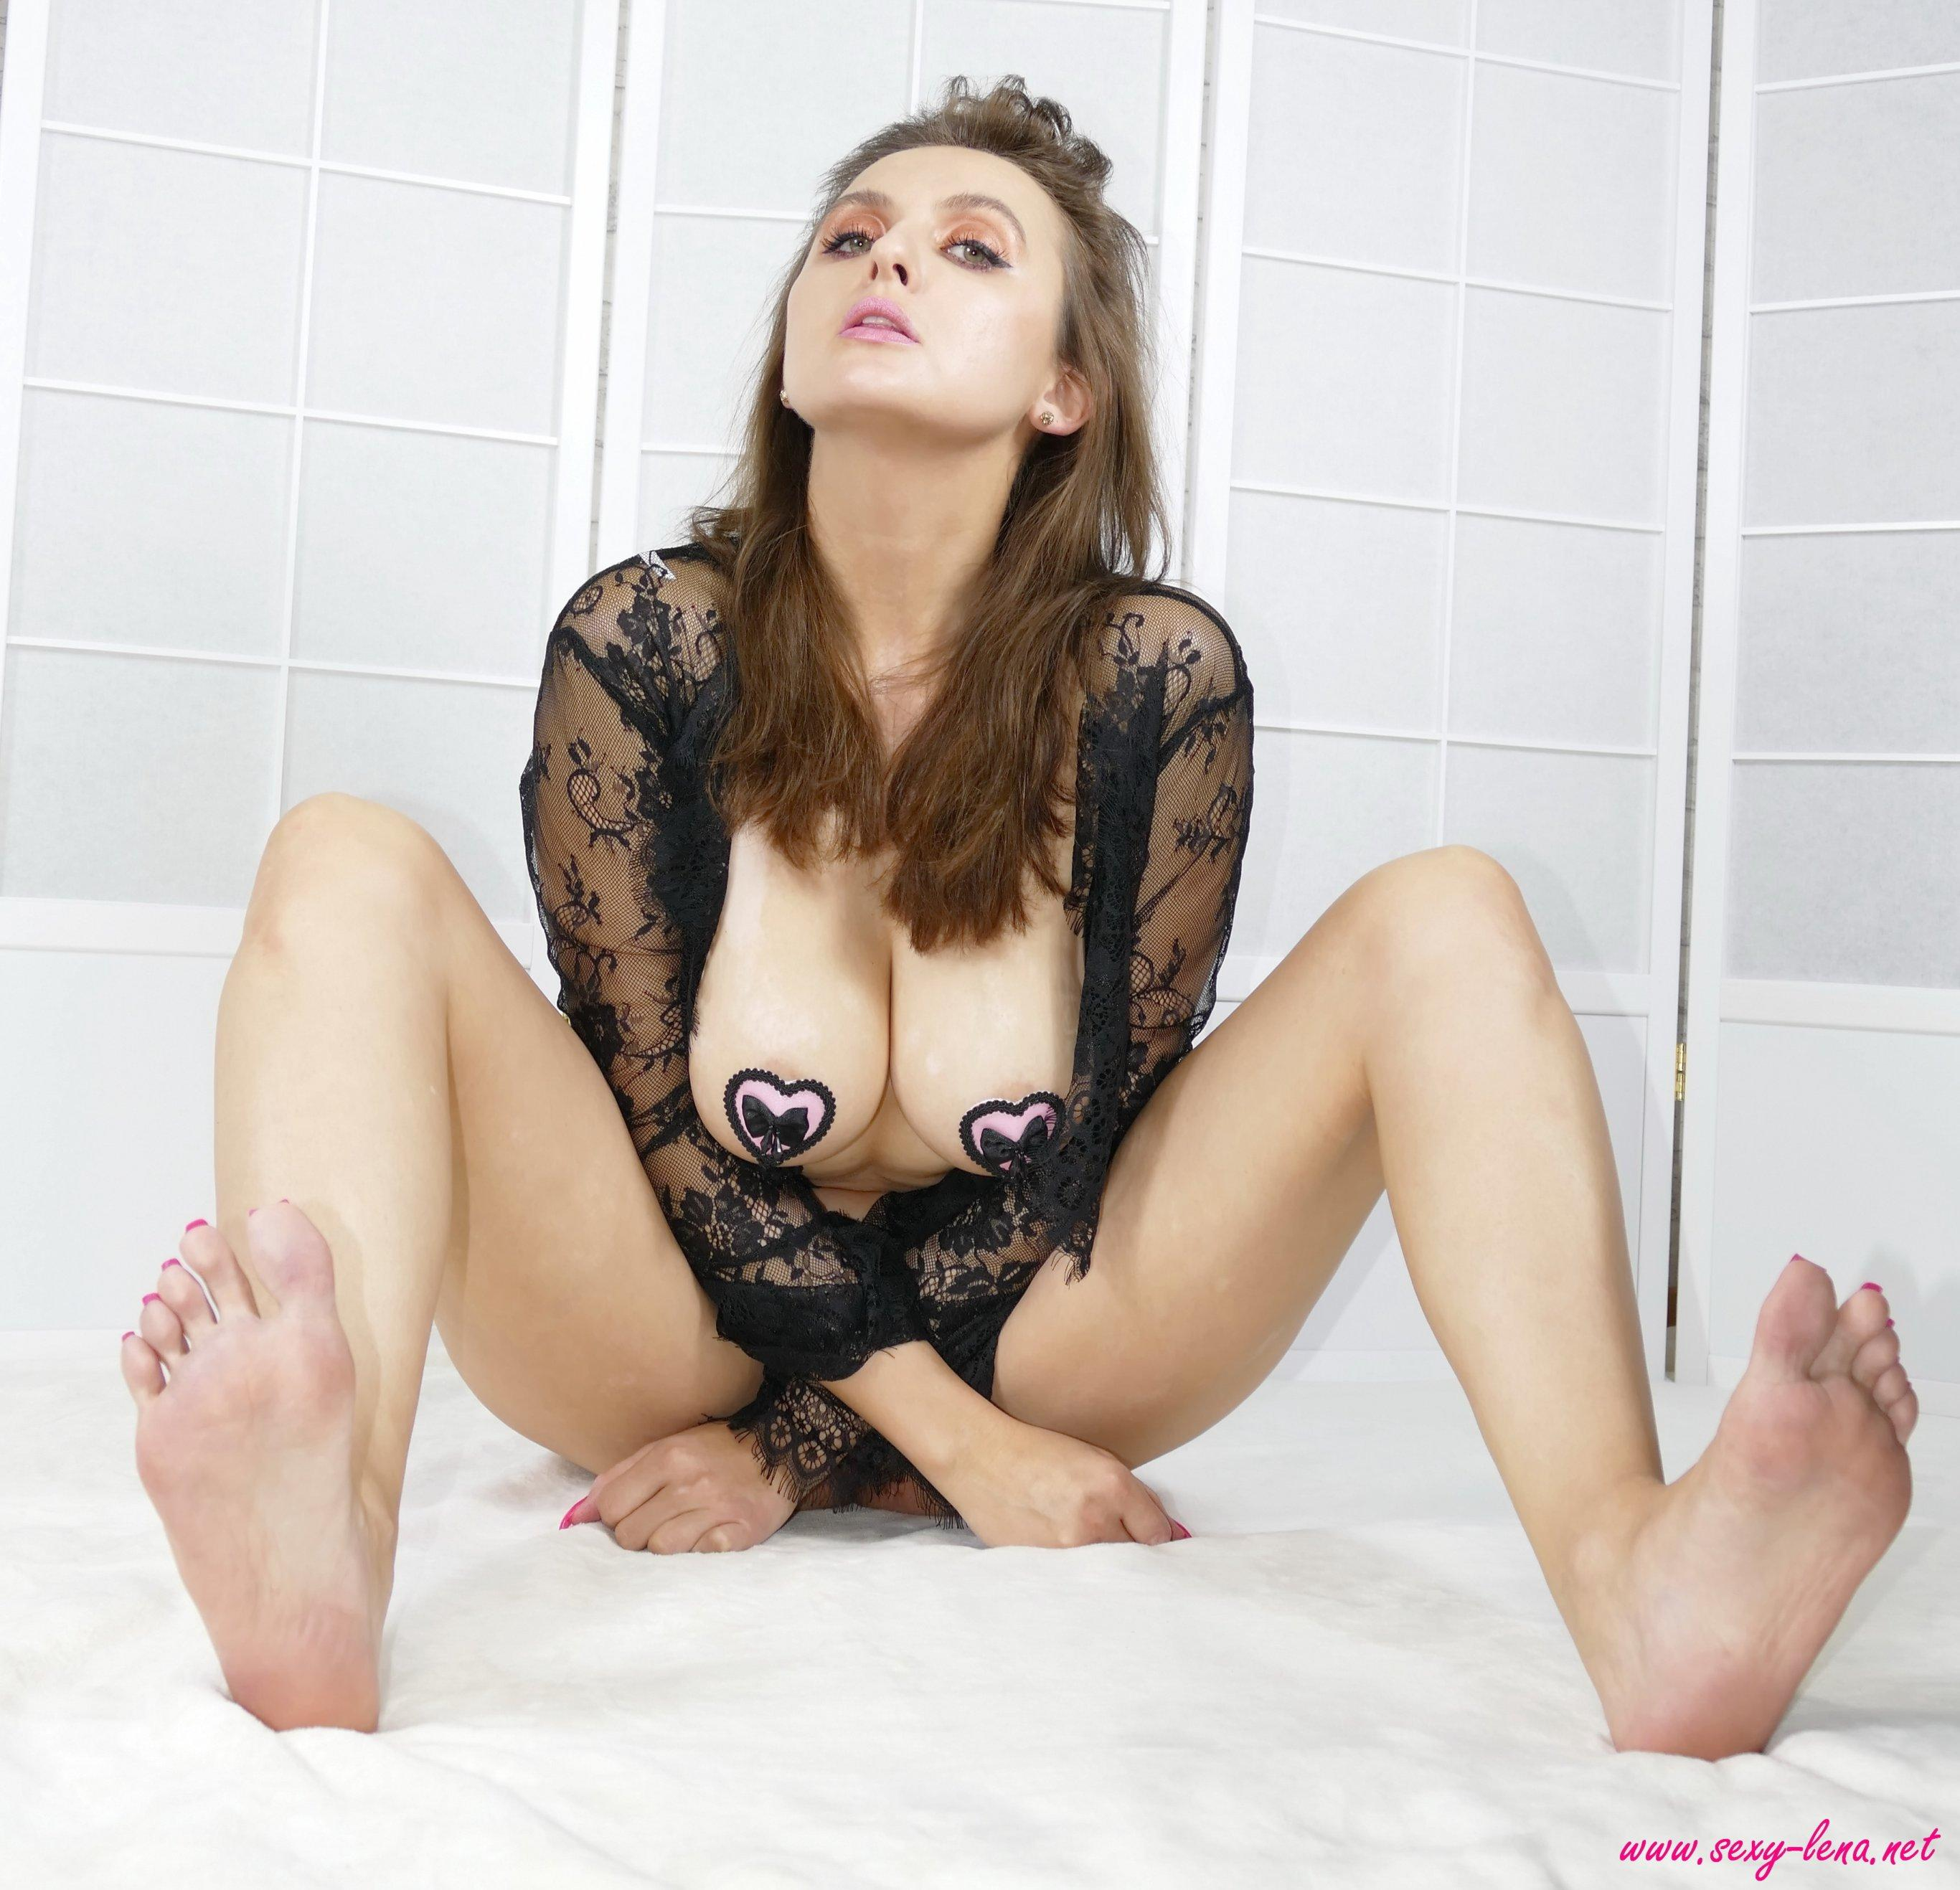 Sexy Lena Shows You Her Sexy Feet  Coed Cherry-7493